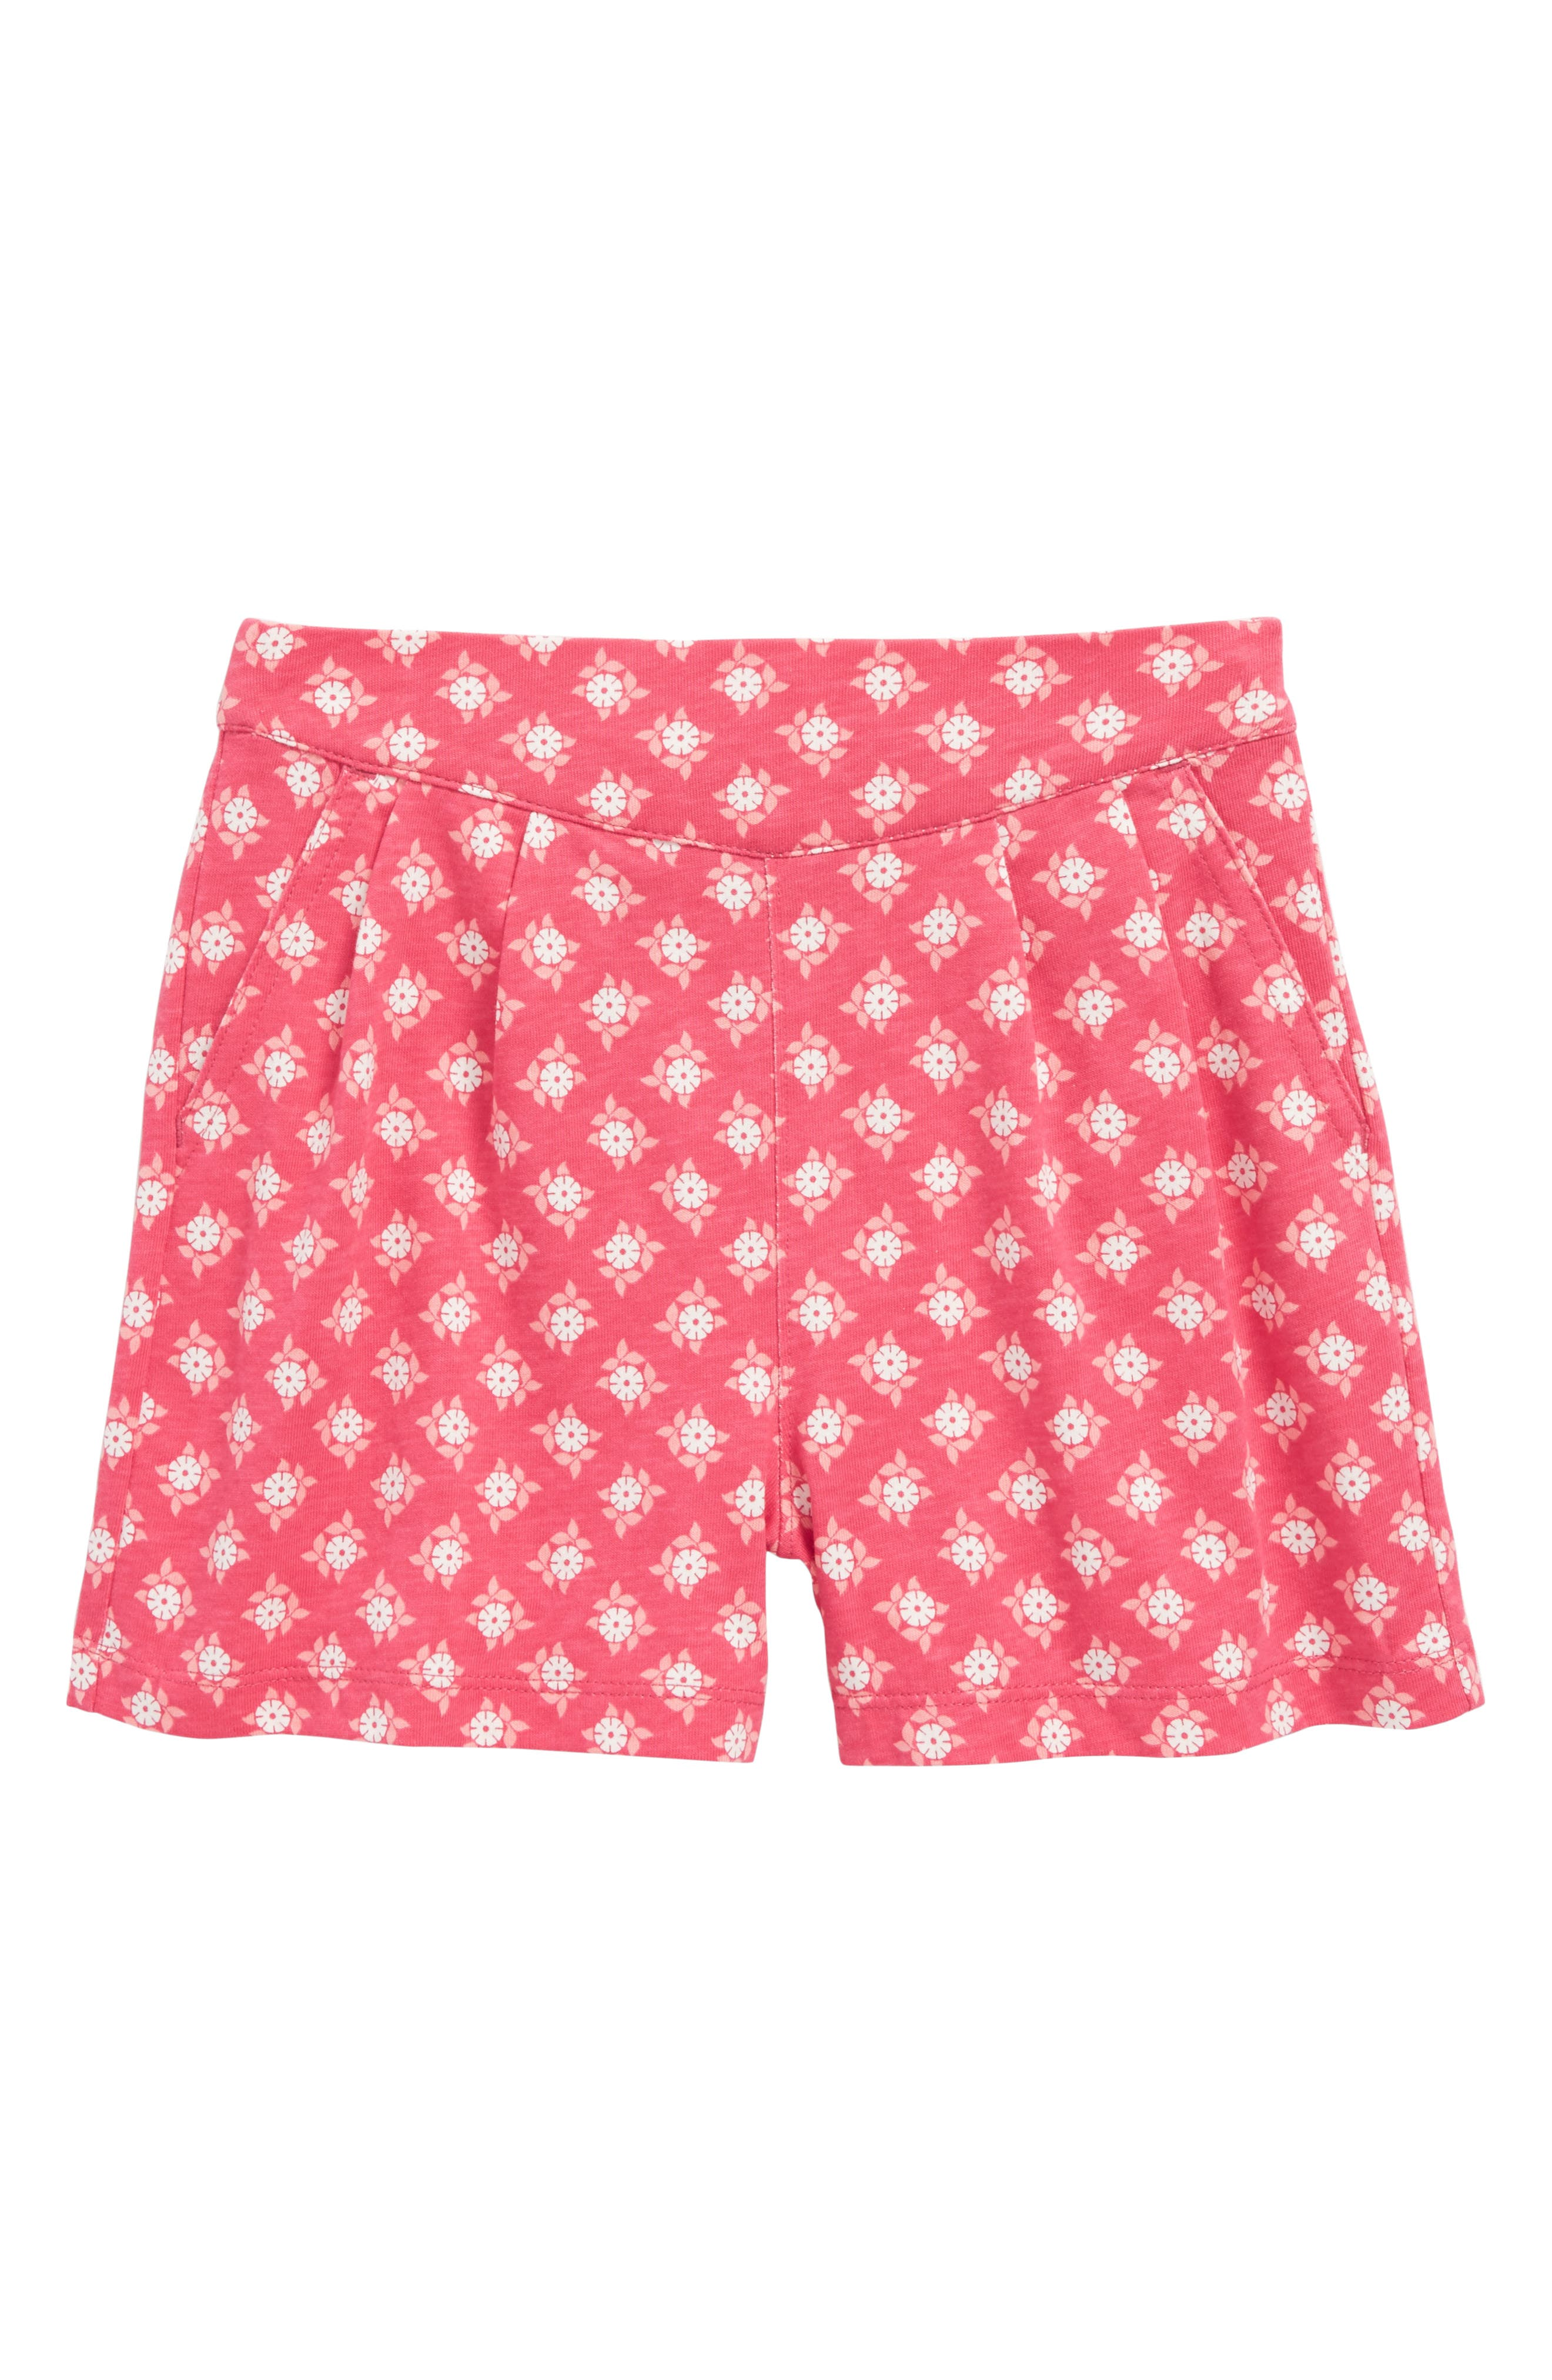 Alternate Image 1 Selected - Tea Collection Sunburst Deck Shorts (Toddler Girls, Little Girls & Big Girls)